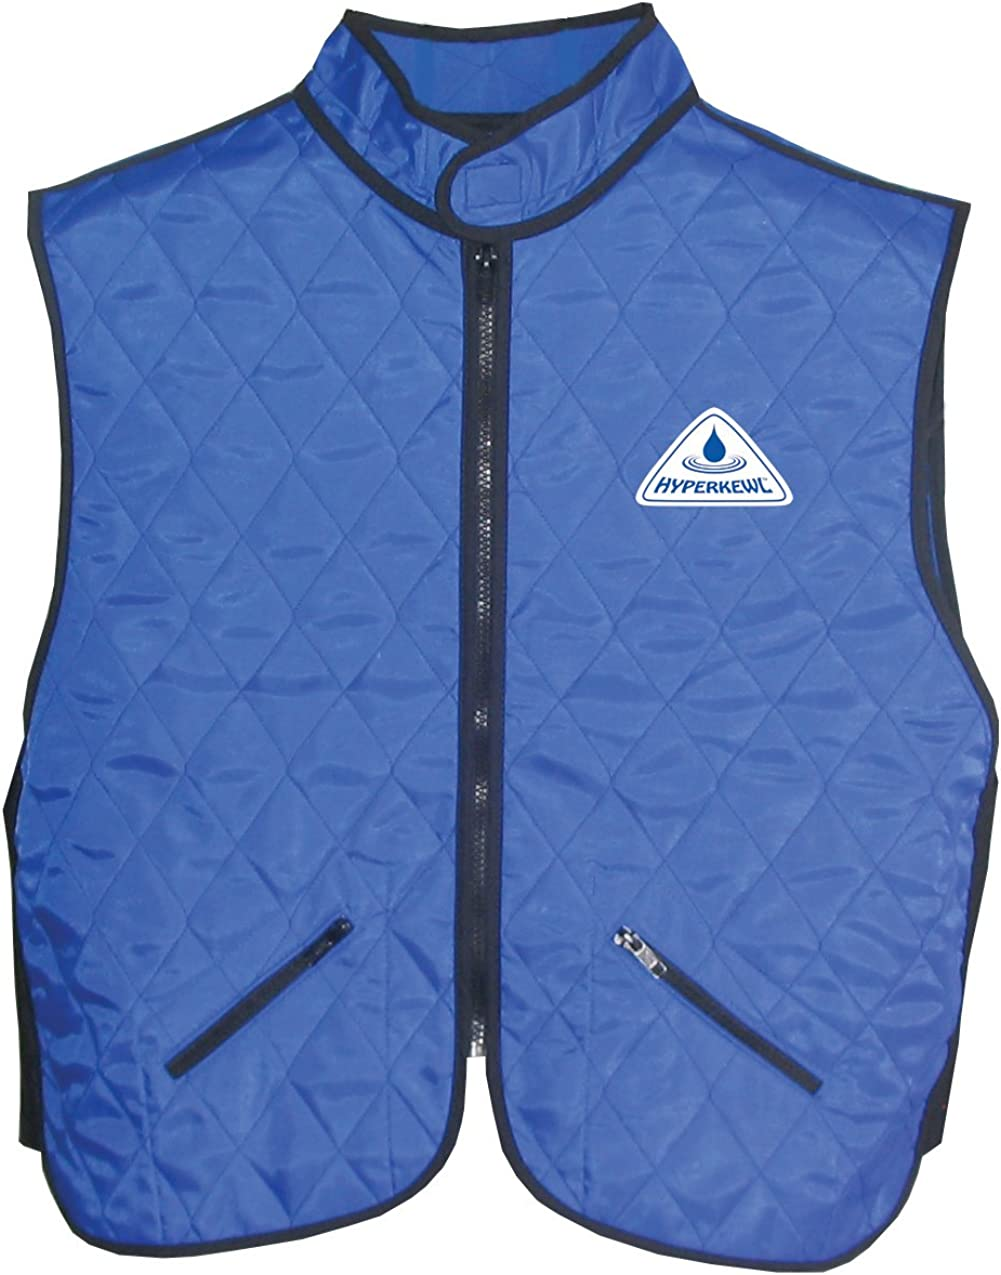 WOMEN'S CUT! -Cooling Deluxe Sport Vest - Enhance performance in the Heat!